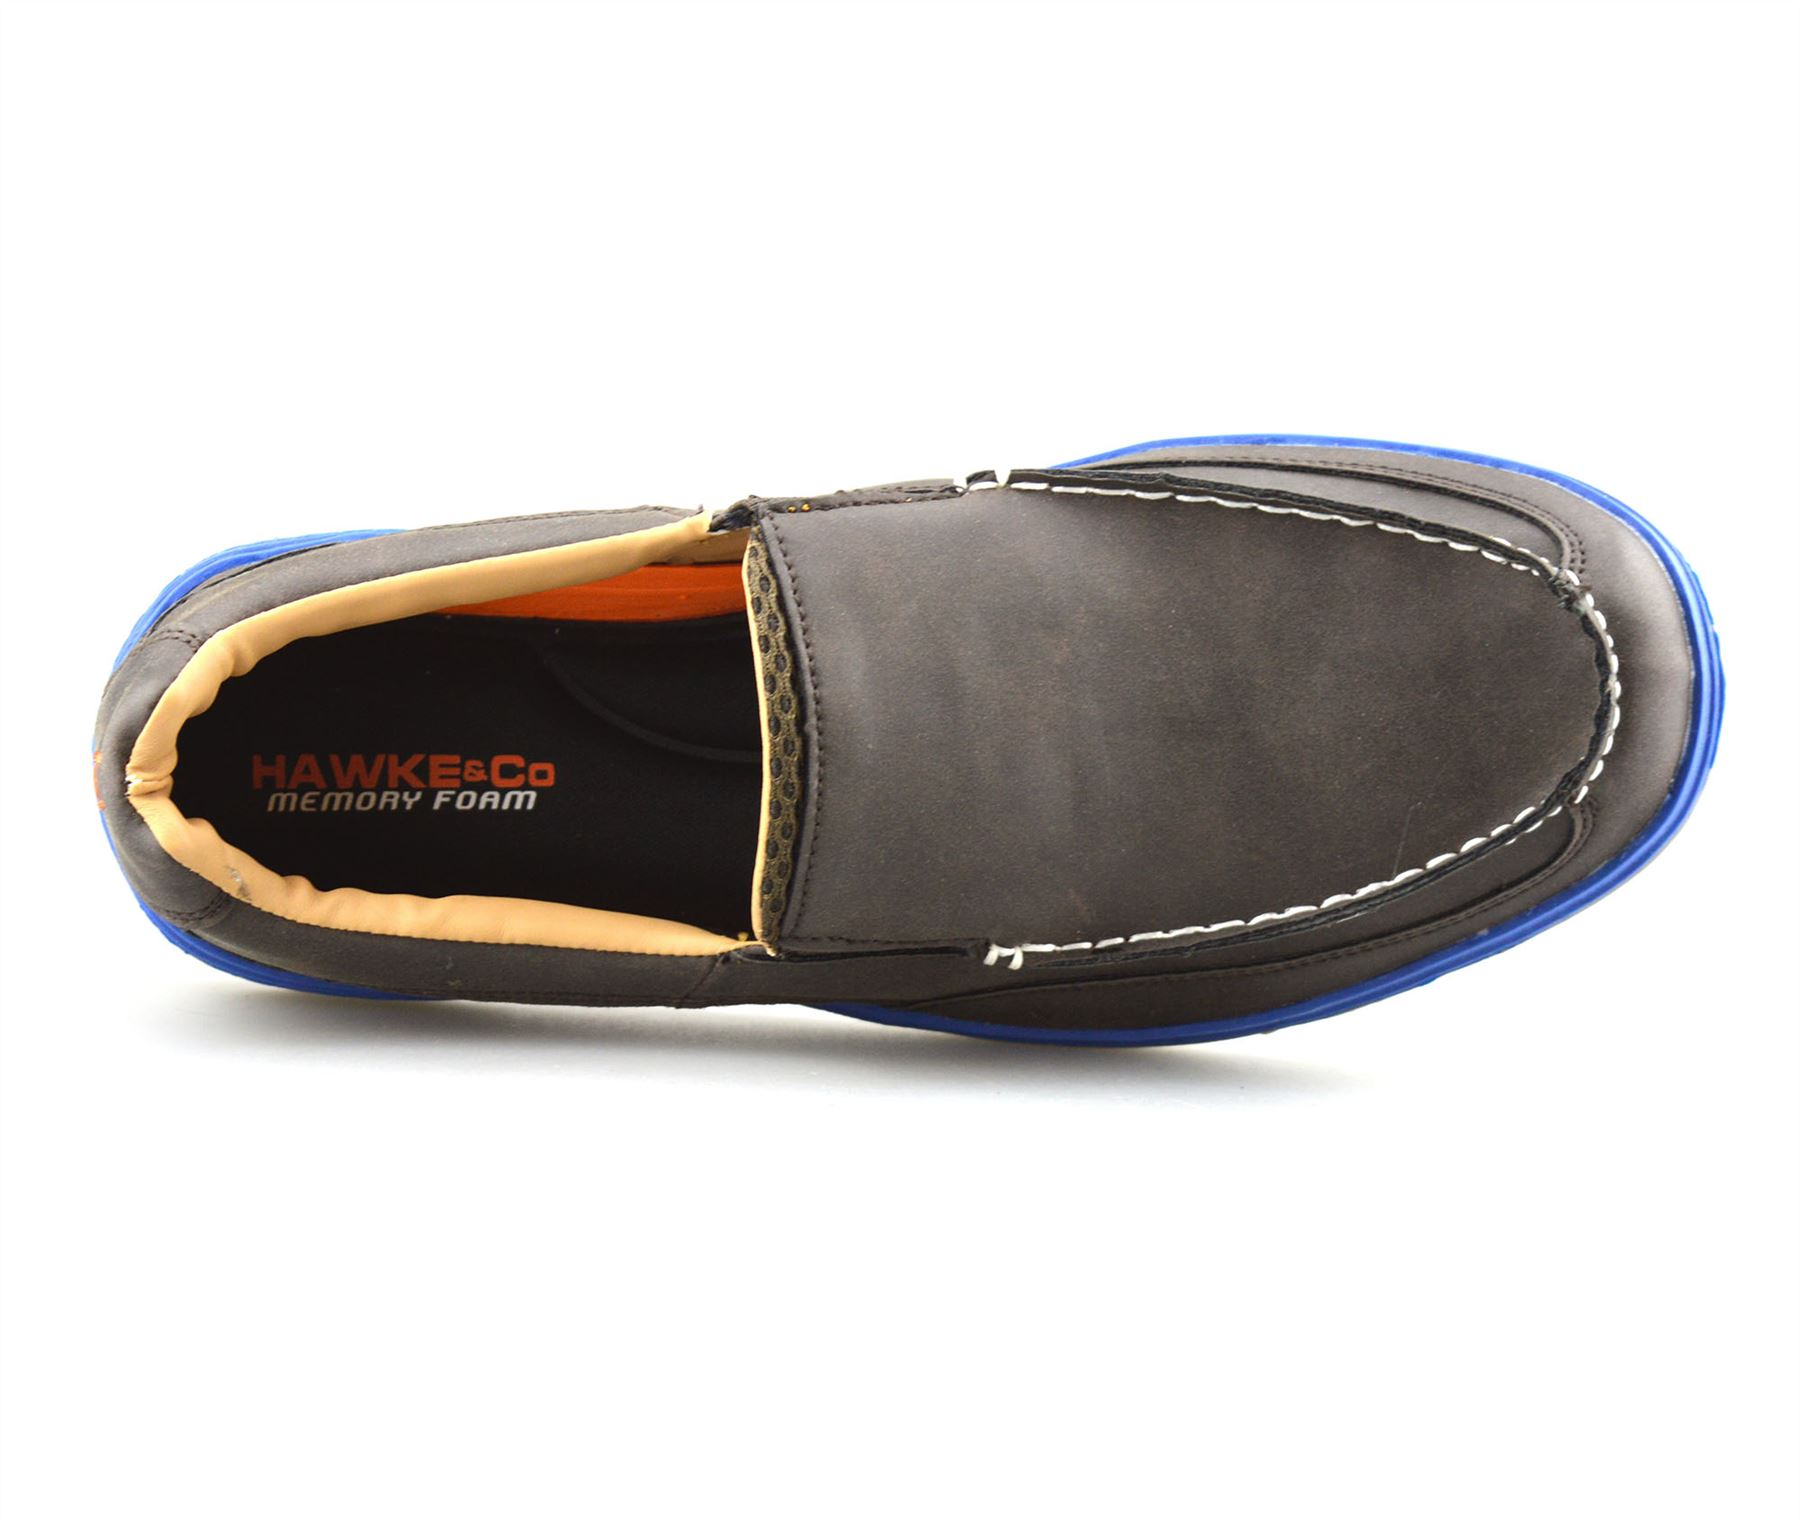 Mens-Casual-Memory-Foam-Slip-On-Walking-Loafers-Moccasin-Driving-Boat-Shoes-Size thumbnail 21